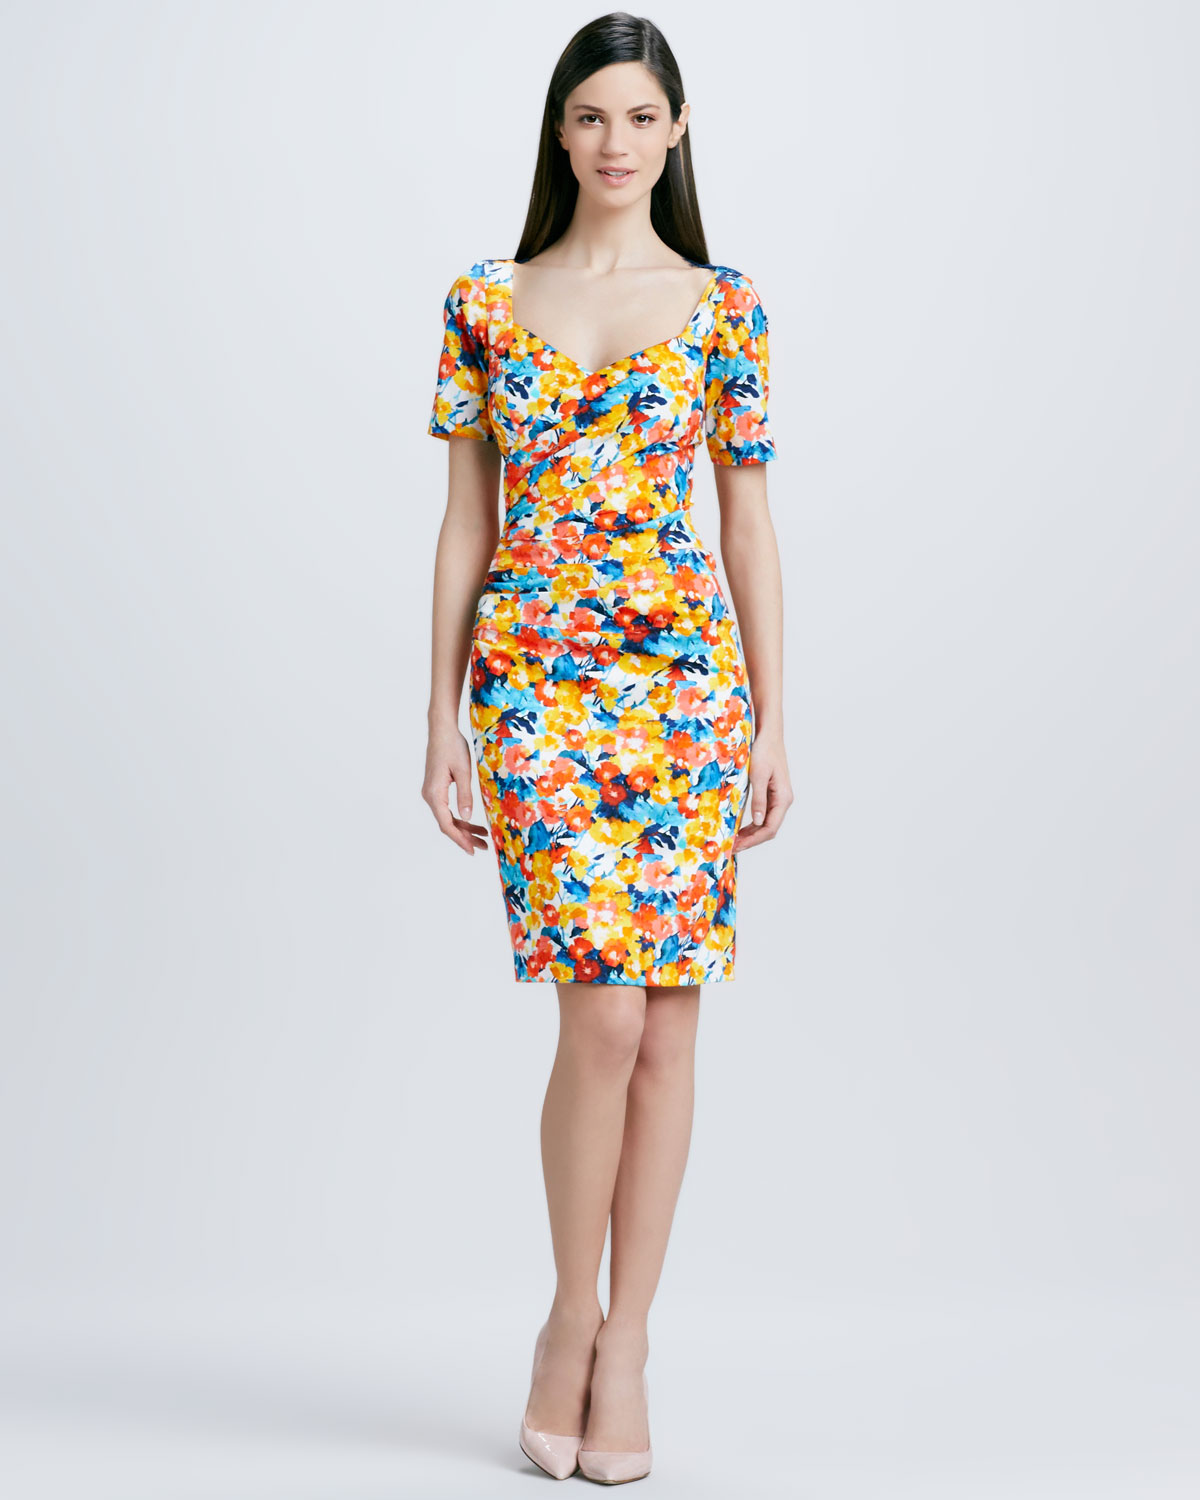 Printed Cocktail Dresses